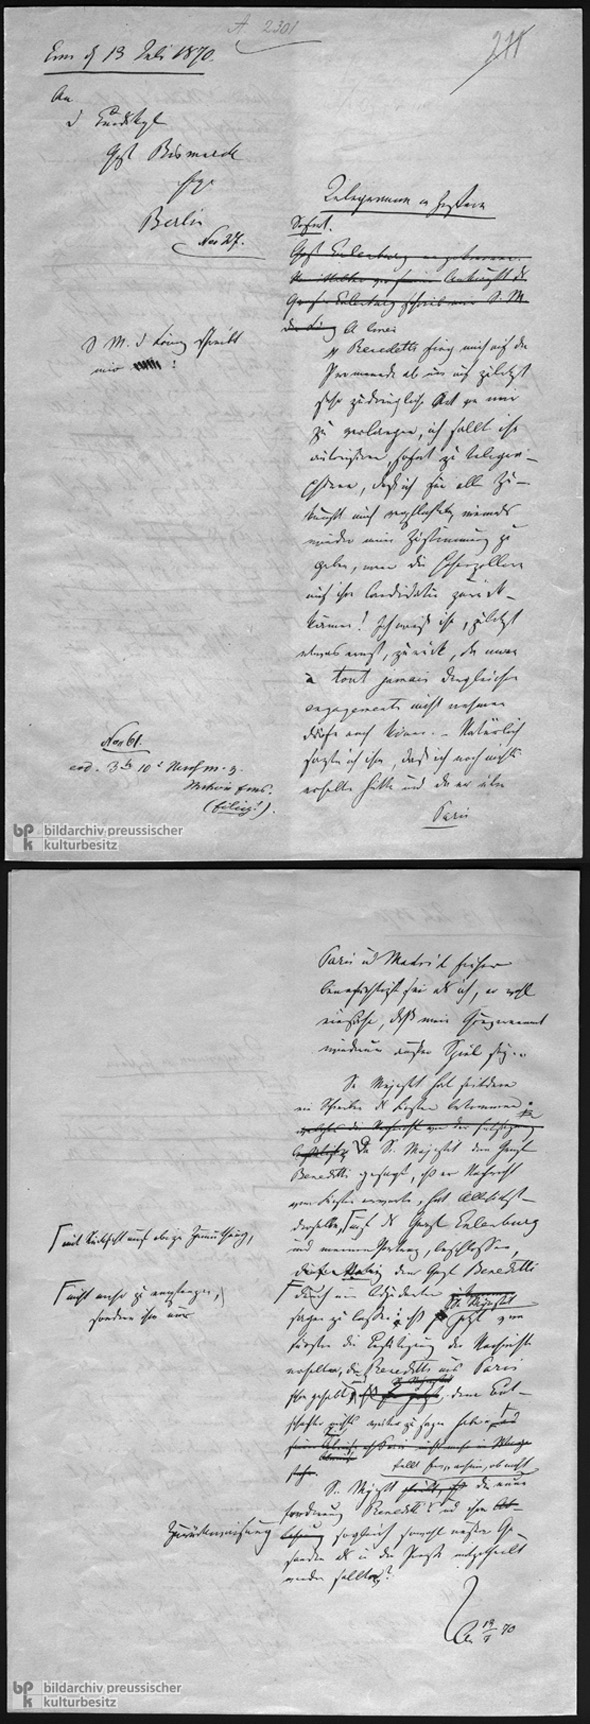 Ems Dispatch, Original (Pages 1 and 2) (July 13, 1870)